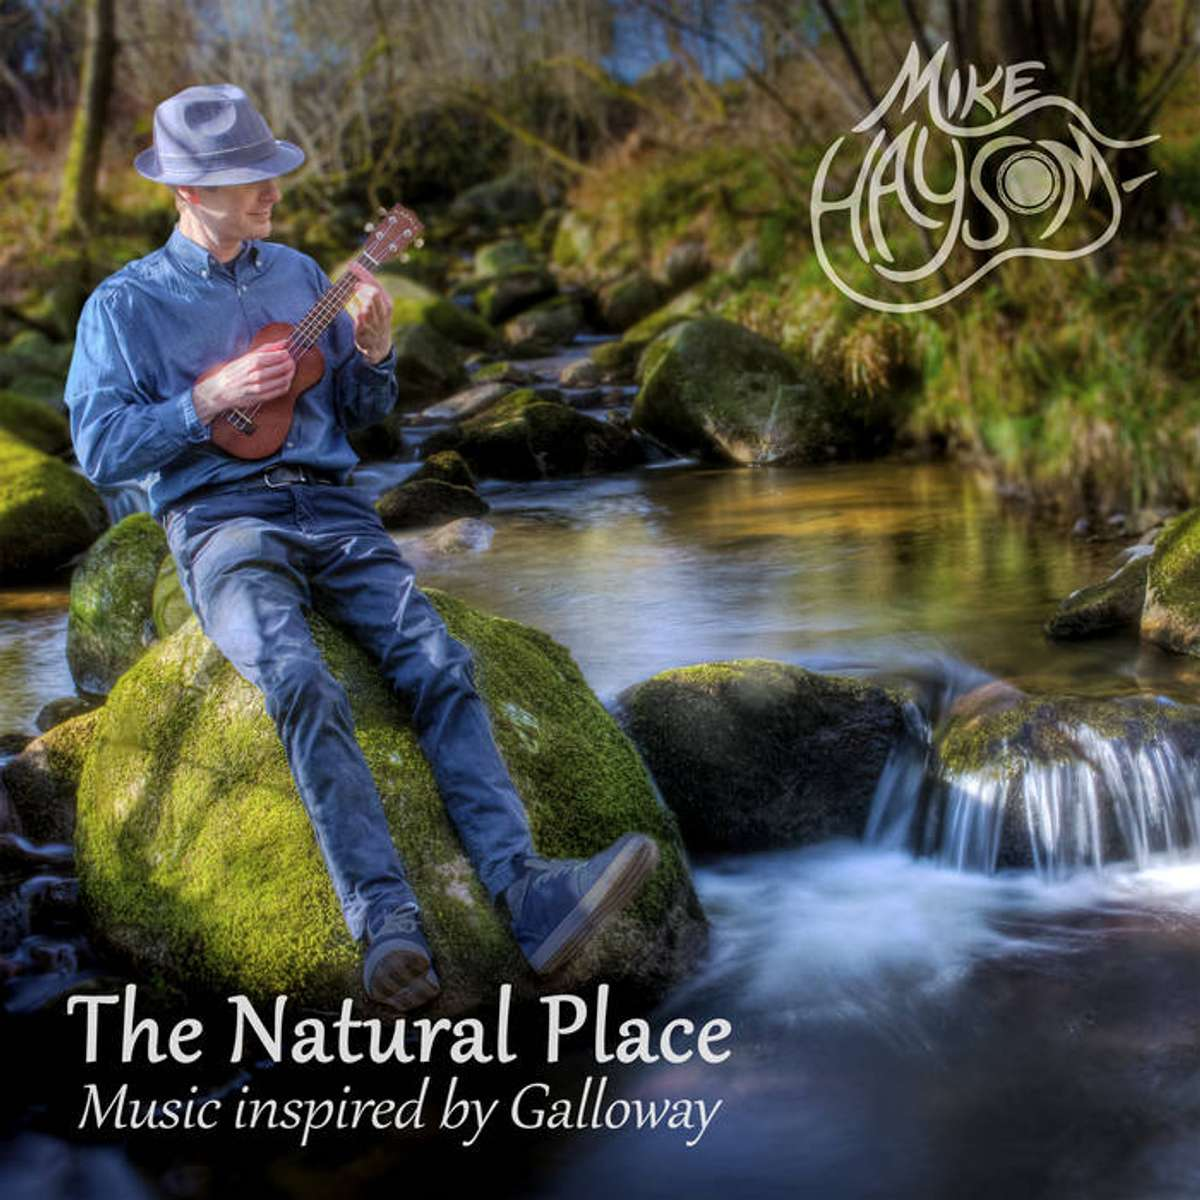 The Natural Place (CD Album) - Mike Haysom